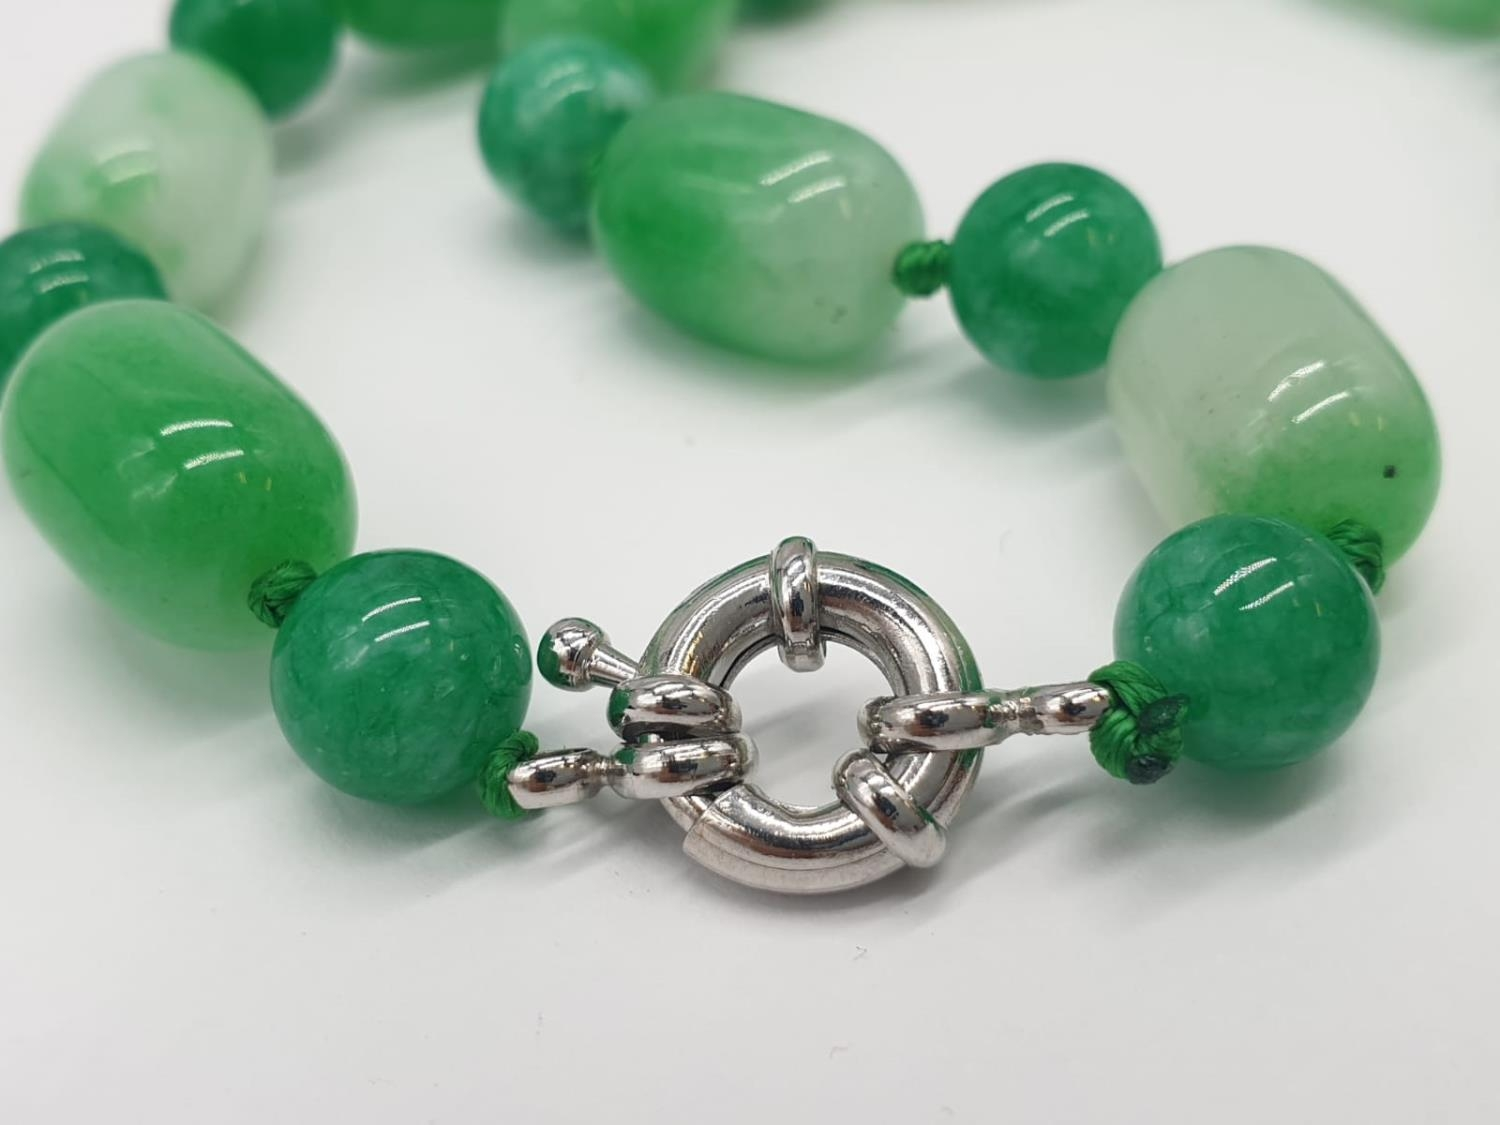 Jade necklace, weight 54g and 42cm long approx - Image 4 of 4